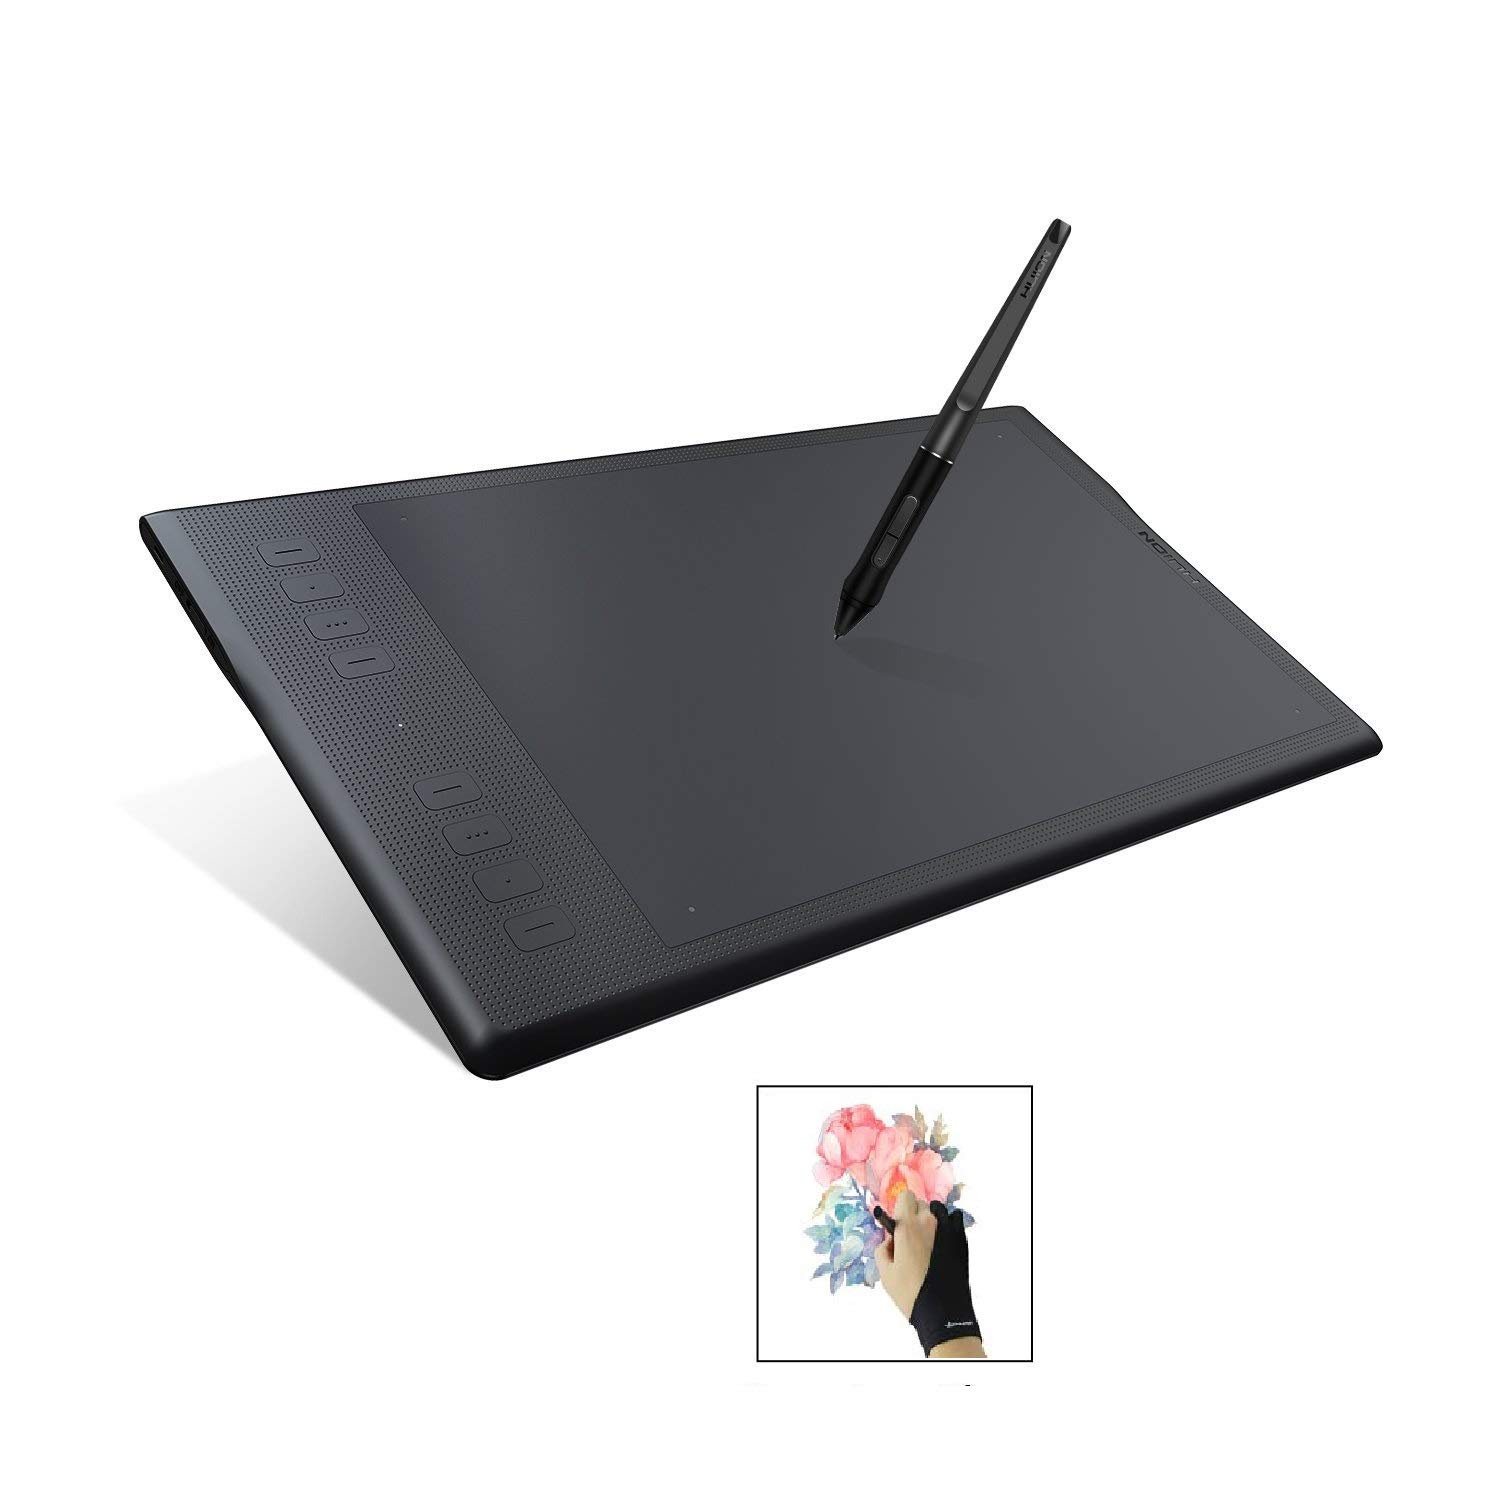 Huion INSPIROY Q11K V2 Wireless Graphics Drawing Pen Tablet with Tilt Feature Battery-Free Stylus, 8192 Levels of Pressure, 8 Express Keys